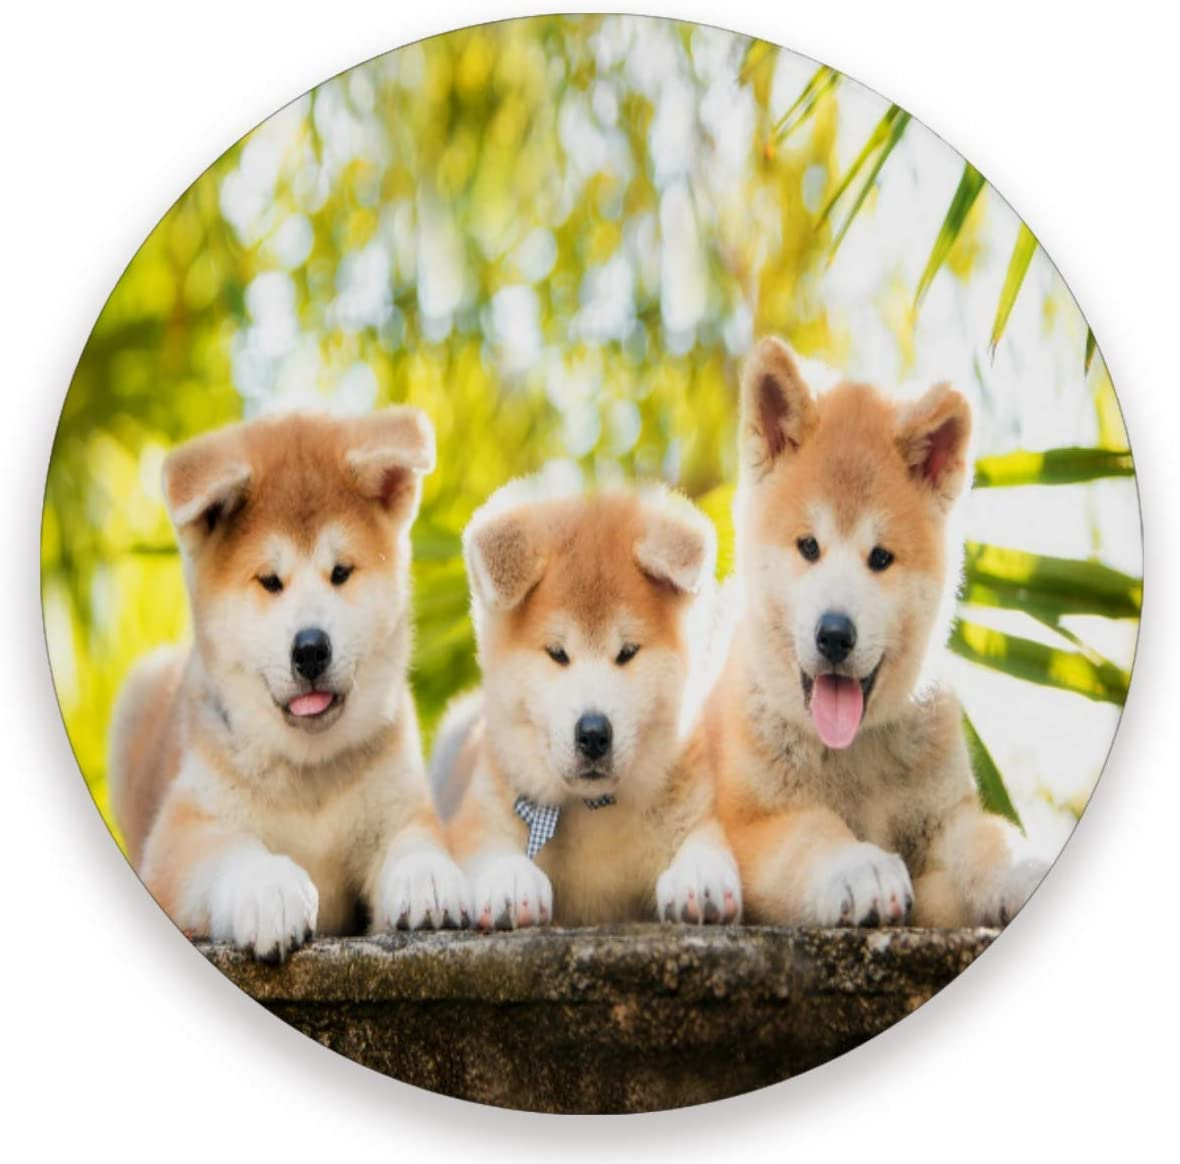 Olinyou Cute Animal Akita Dogs Coaster for Drinks 1 Pieces Absorbent Ceramic Stone Coasters with Cork Base